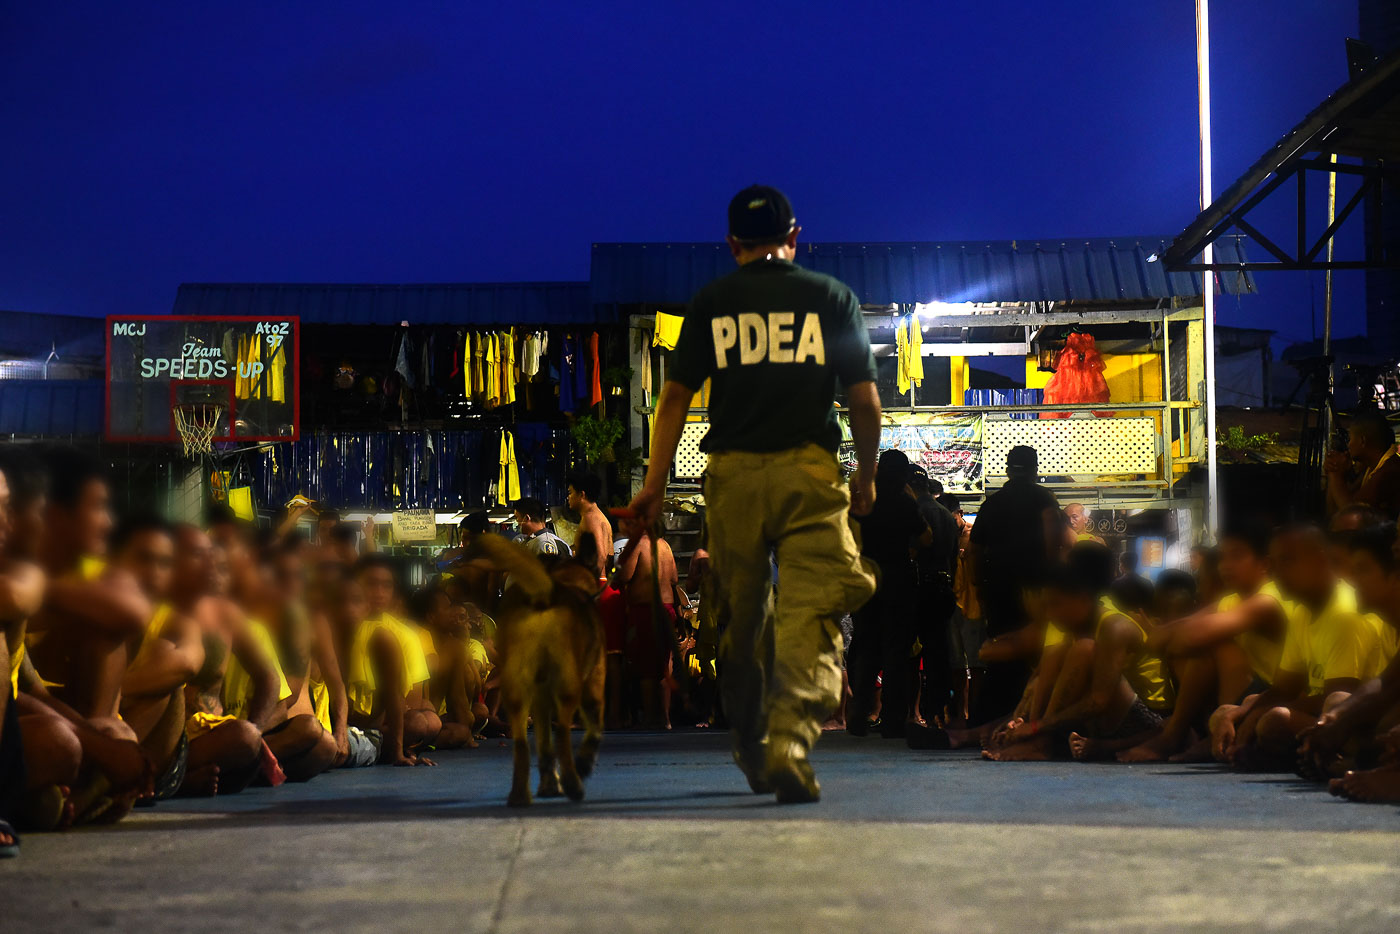 DAWN RAID. K9 units aid authorities from the PDEA, PNP-MPD, BJMP during the surprise inspection at the Manila City Jail on June 20, 2018. All photos by Maria Tan/Rappler